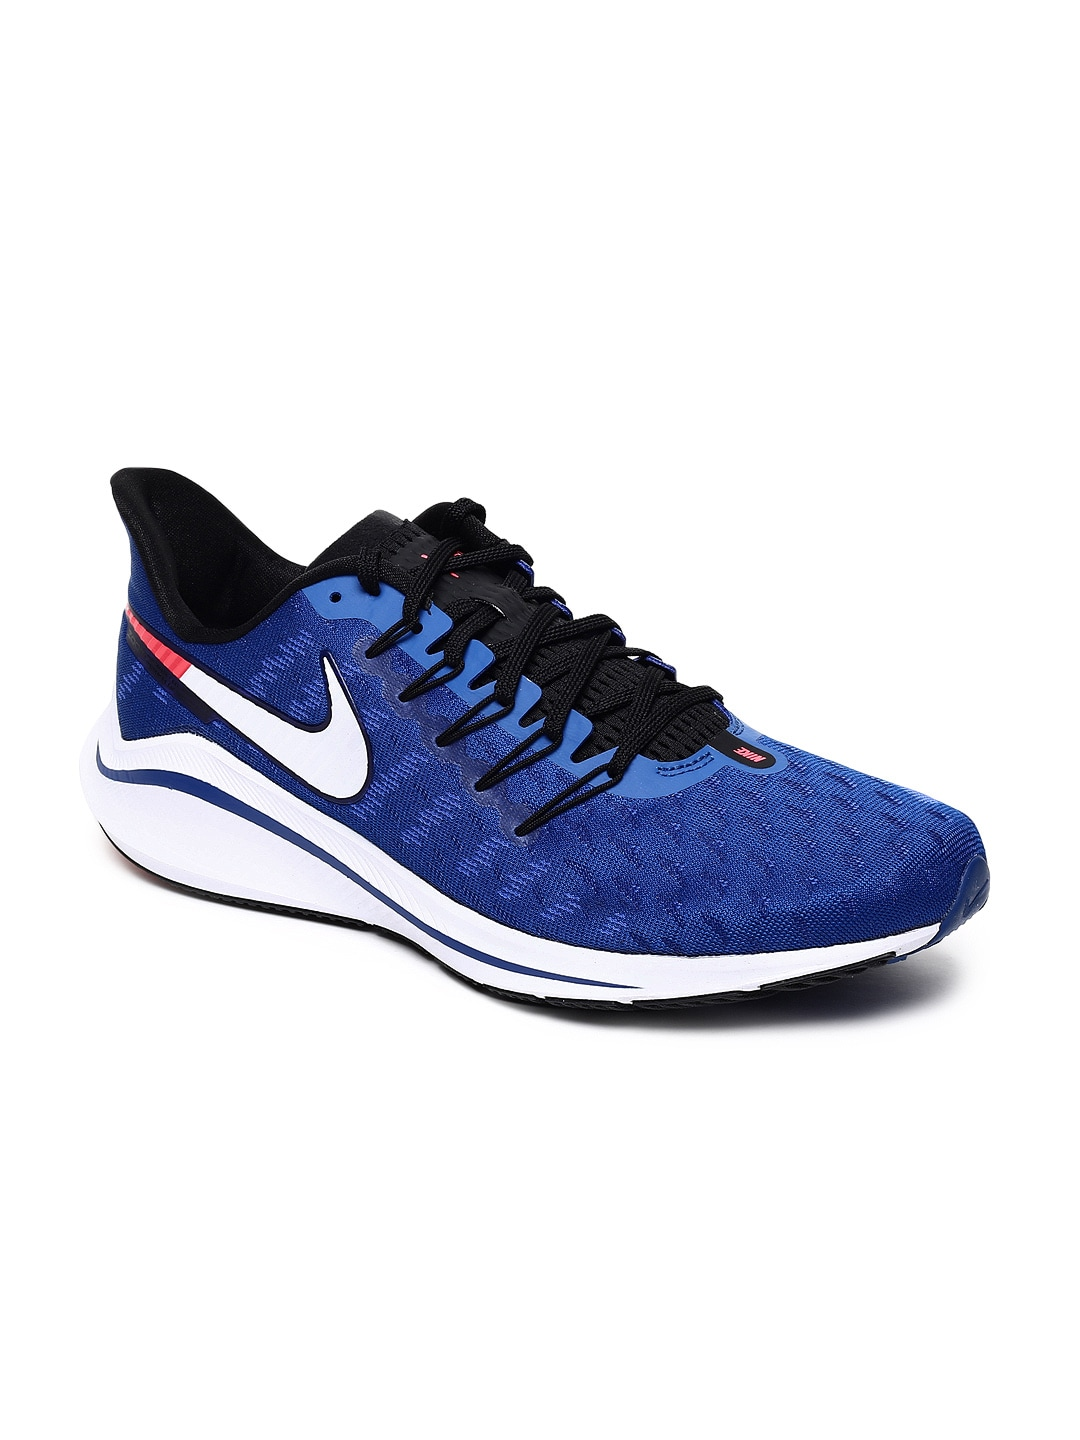 474e65e51dfdf Nike Vomero - Buy Nike Vomero online in India